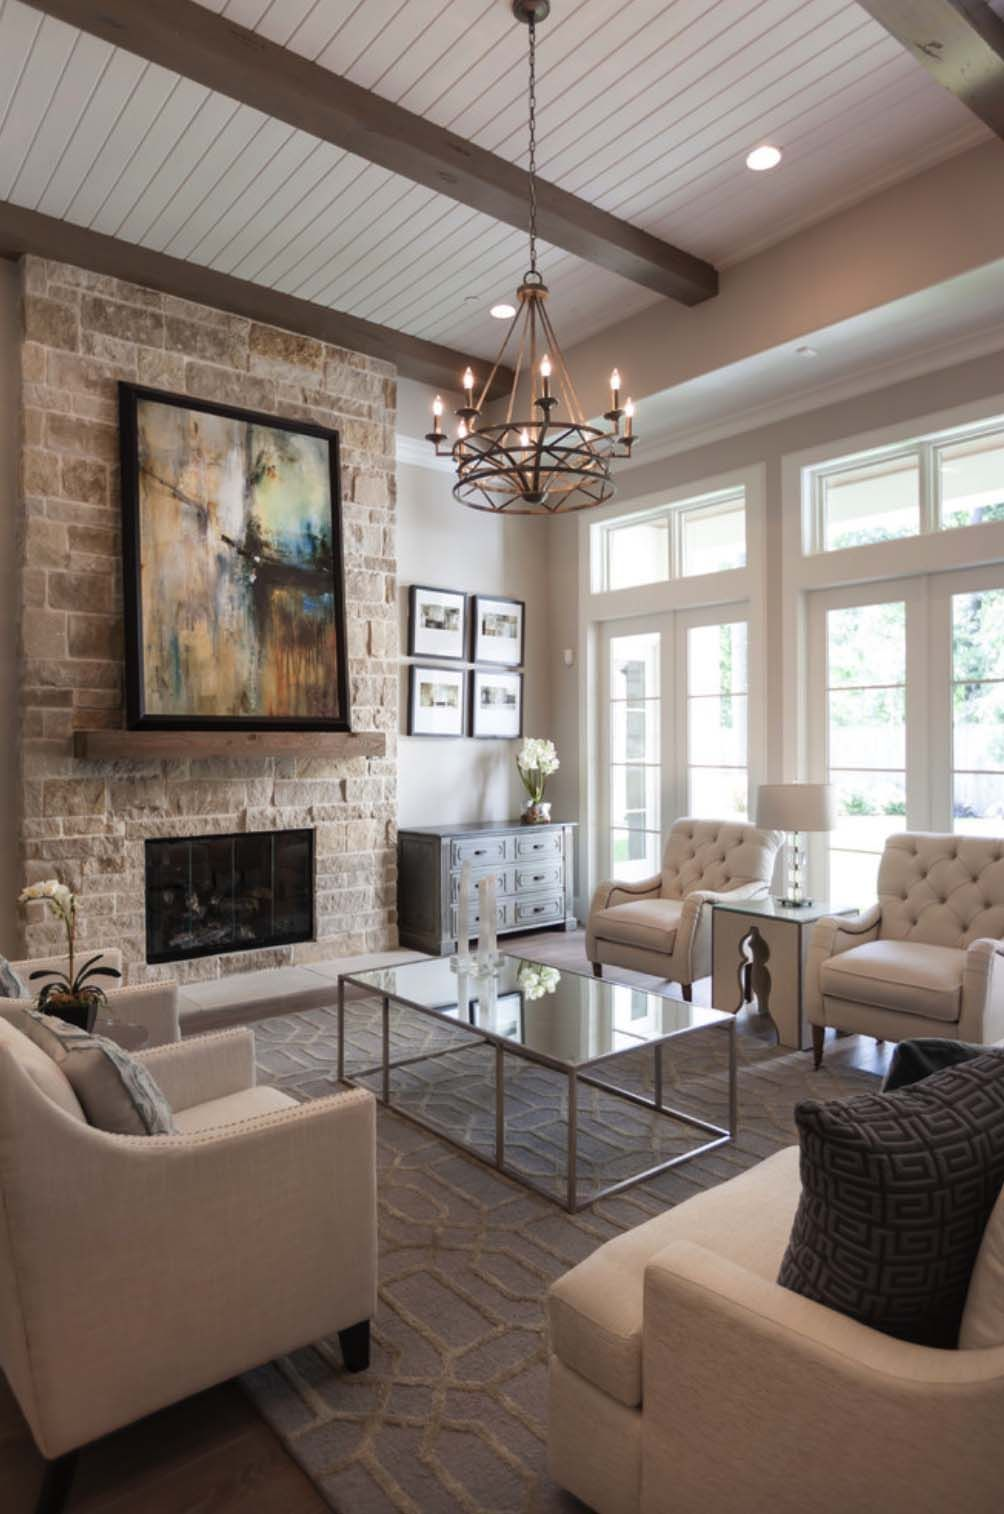 This Warm And Inviting Transitional Style Home Was Designed By Frankel Building Group Located In The Woodlands Reserve Houston Texas